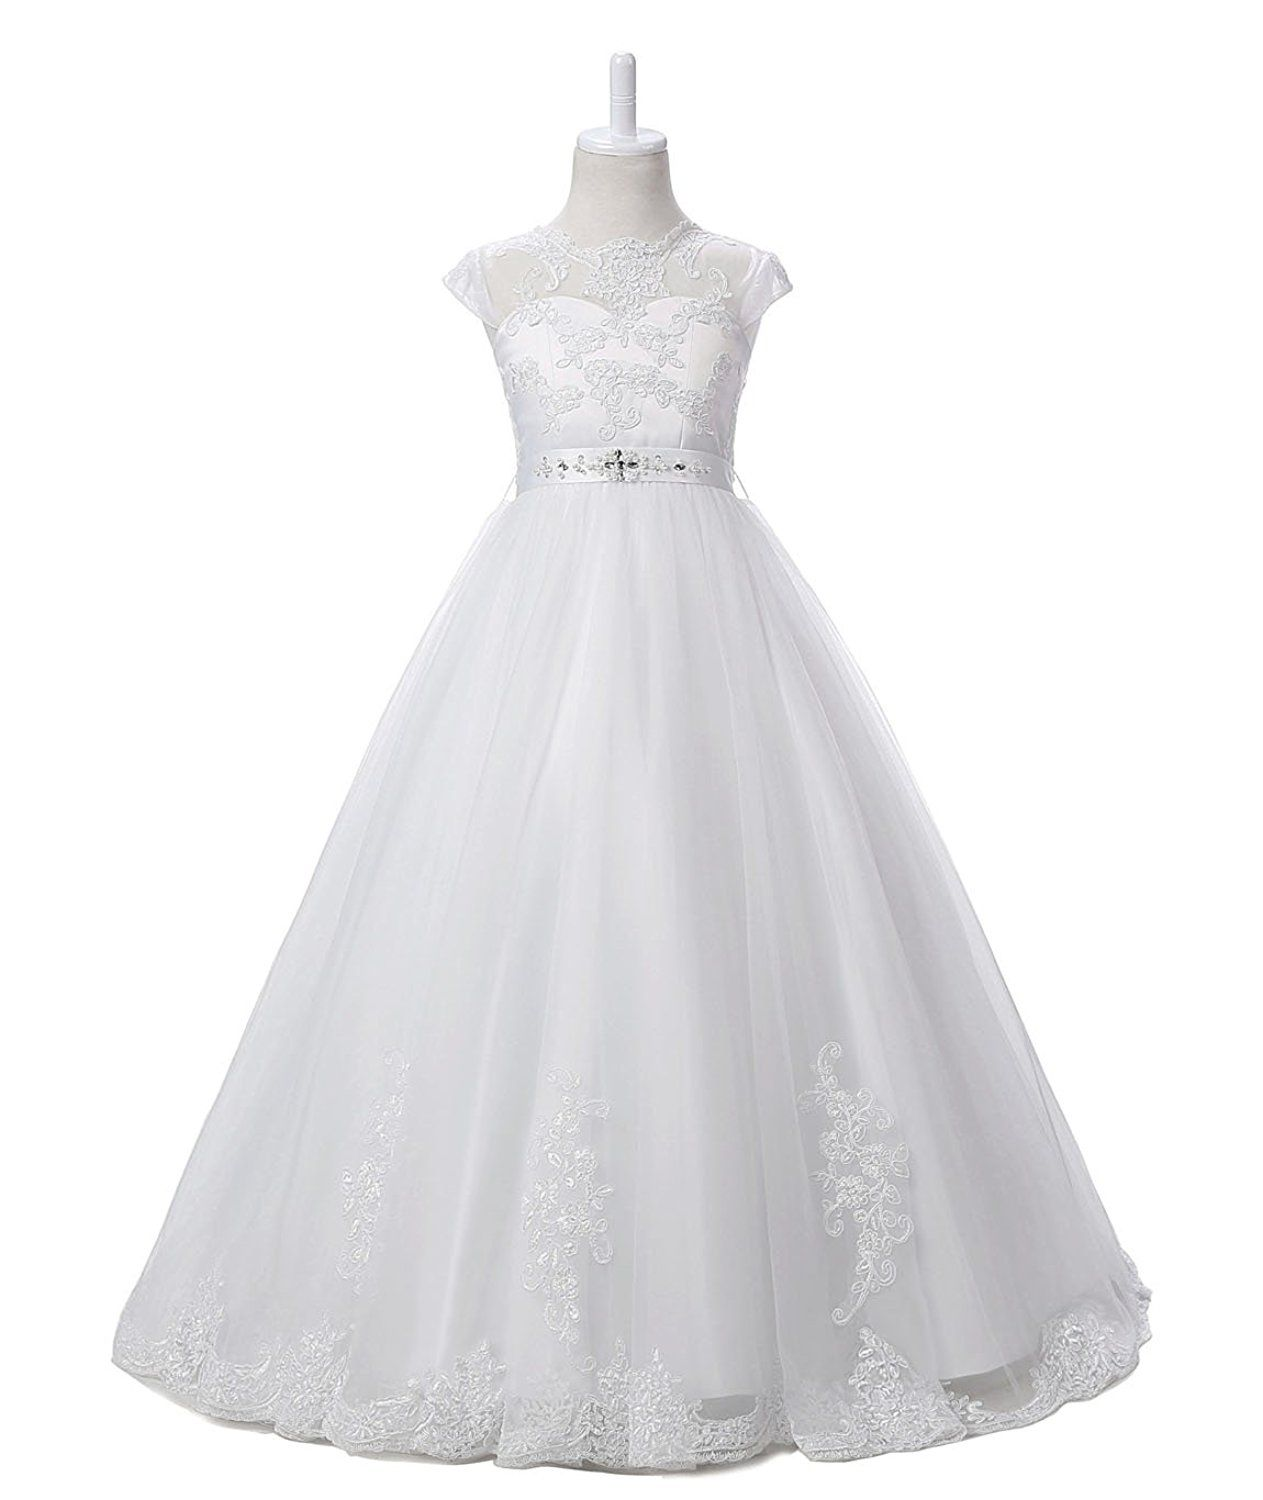 2b4722cf72 Amazon.com  Nina Flower Girls Pageant First Communion Scoop Lace Dress  NND065  Clothing